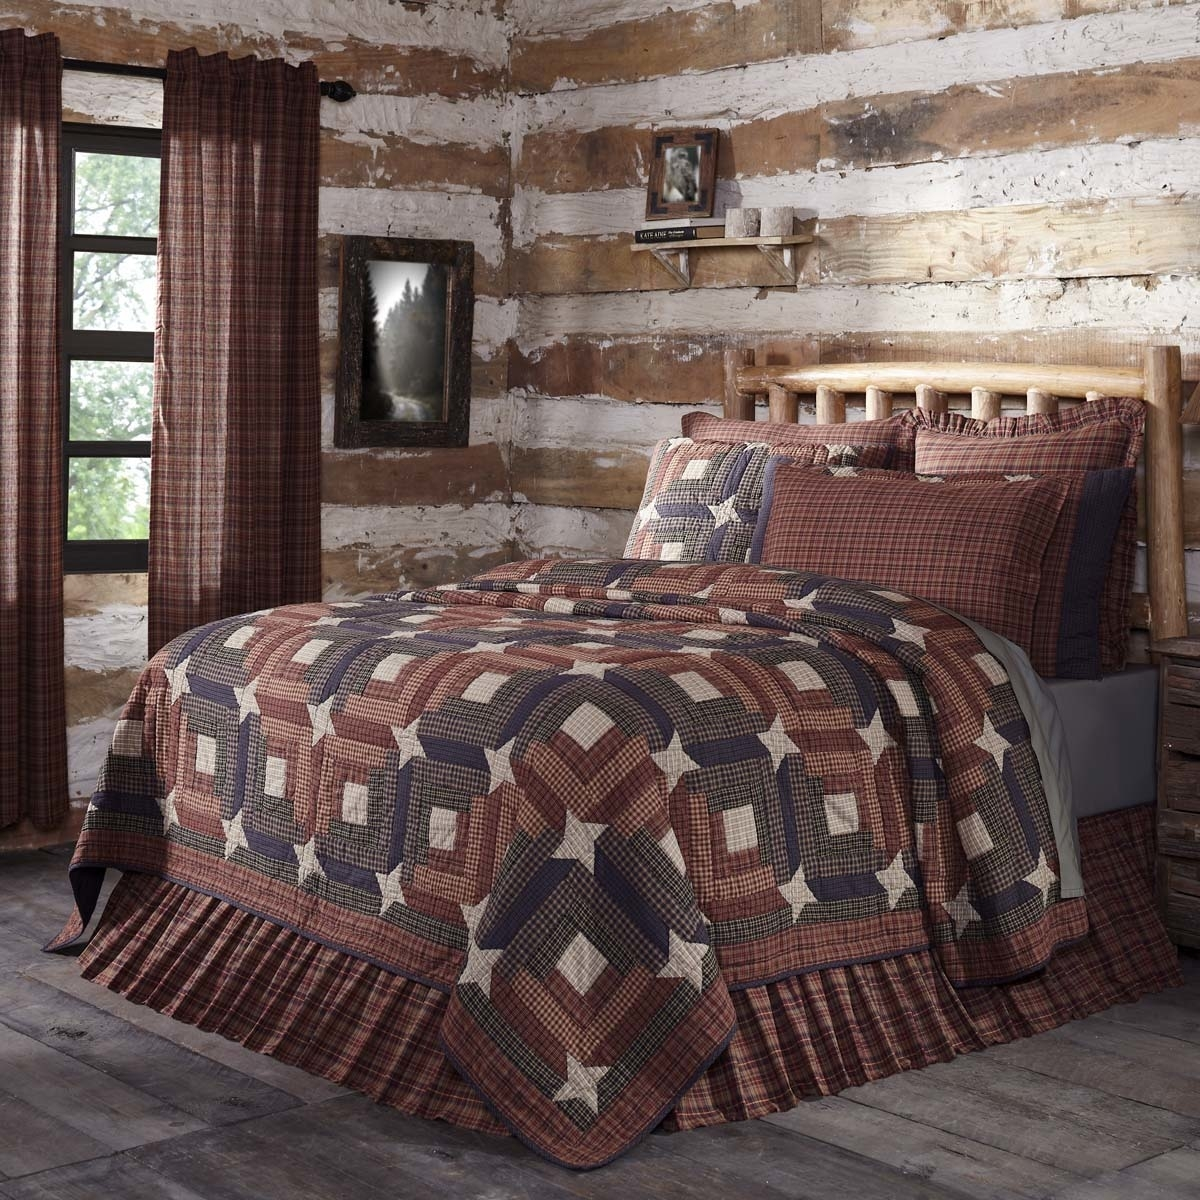 Rustic & Lodge Bedding Parker Red Quilt 5b17f2b8e224610ebe5146f3